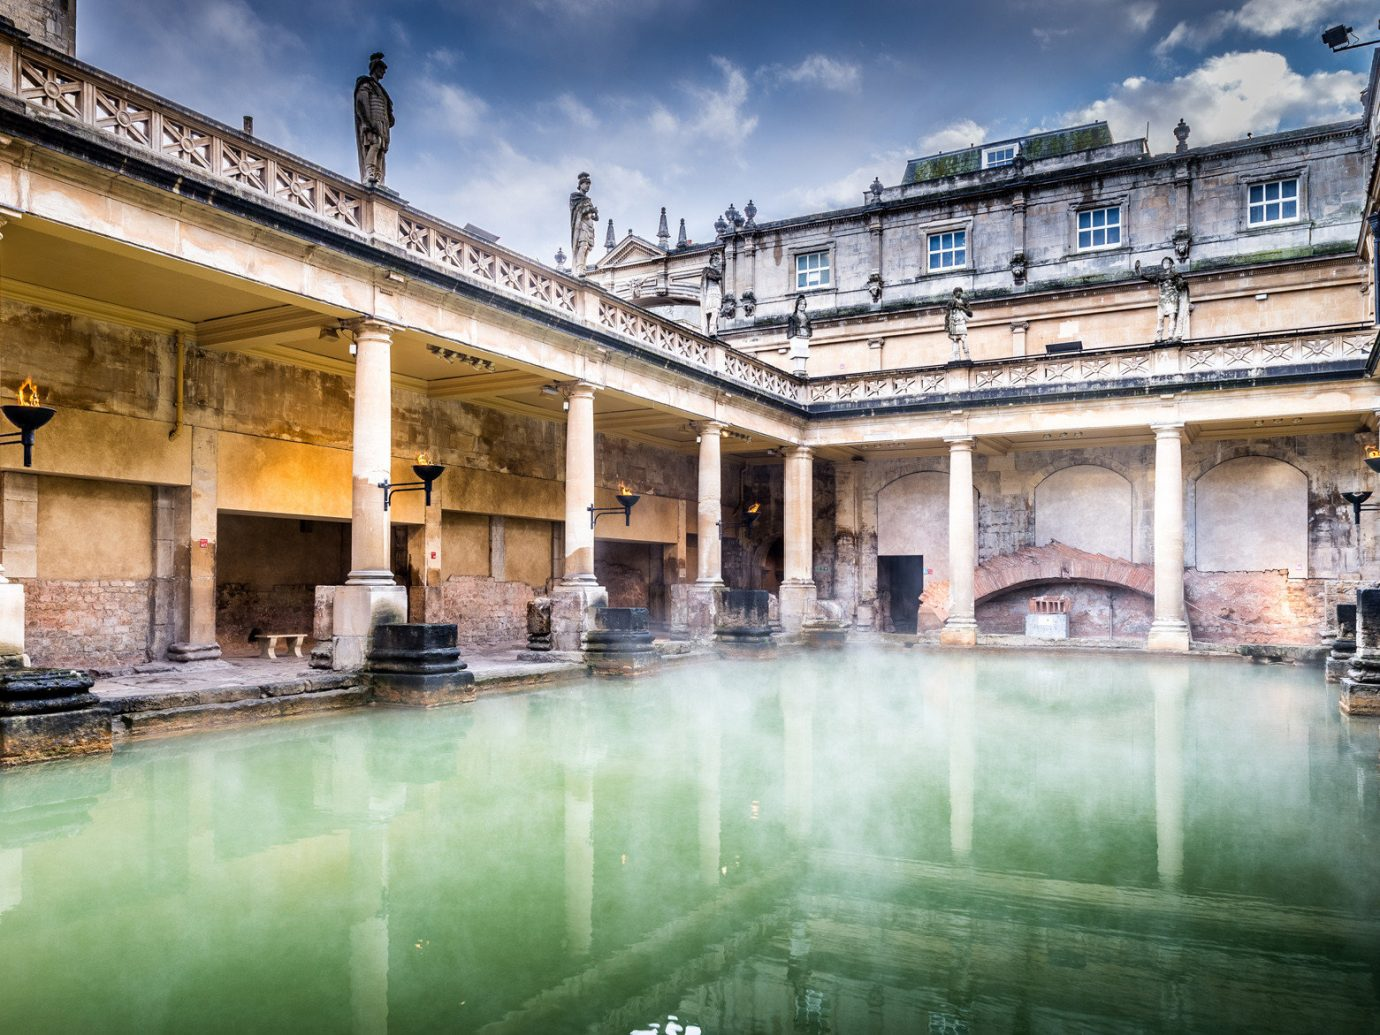 Health + Wellness Luxury Travel Road Trips Trip Ideas building water outdoor reflection landmark thermae tourist attraction estate ancient rome historic site sky tourism symmetry water feature ancient history hacienda facade stone rainy